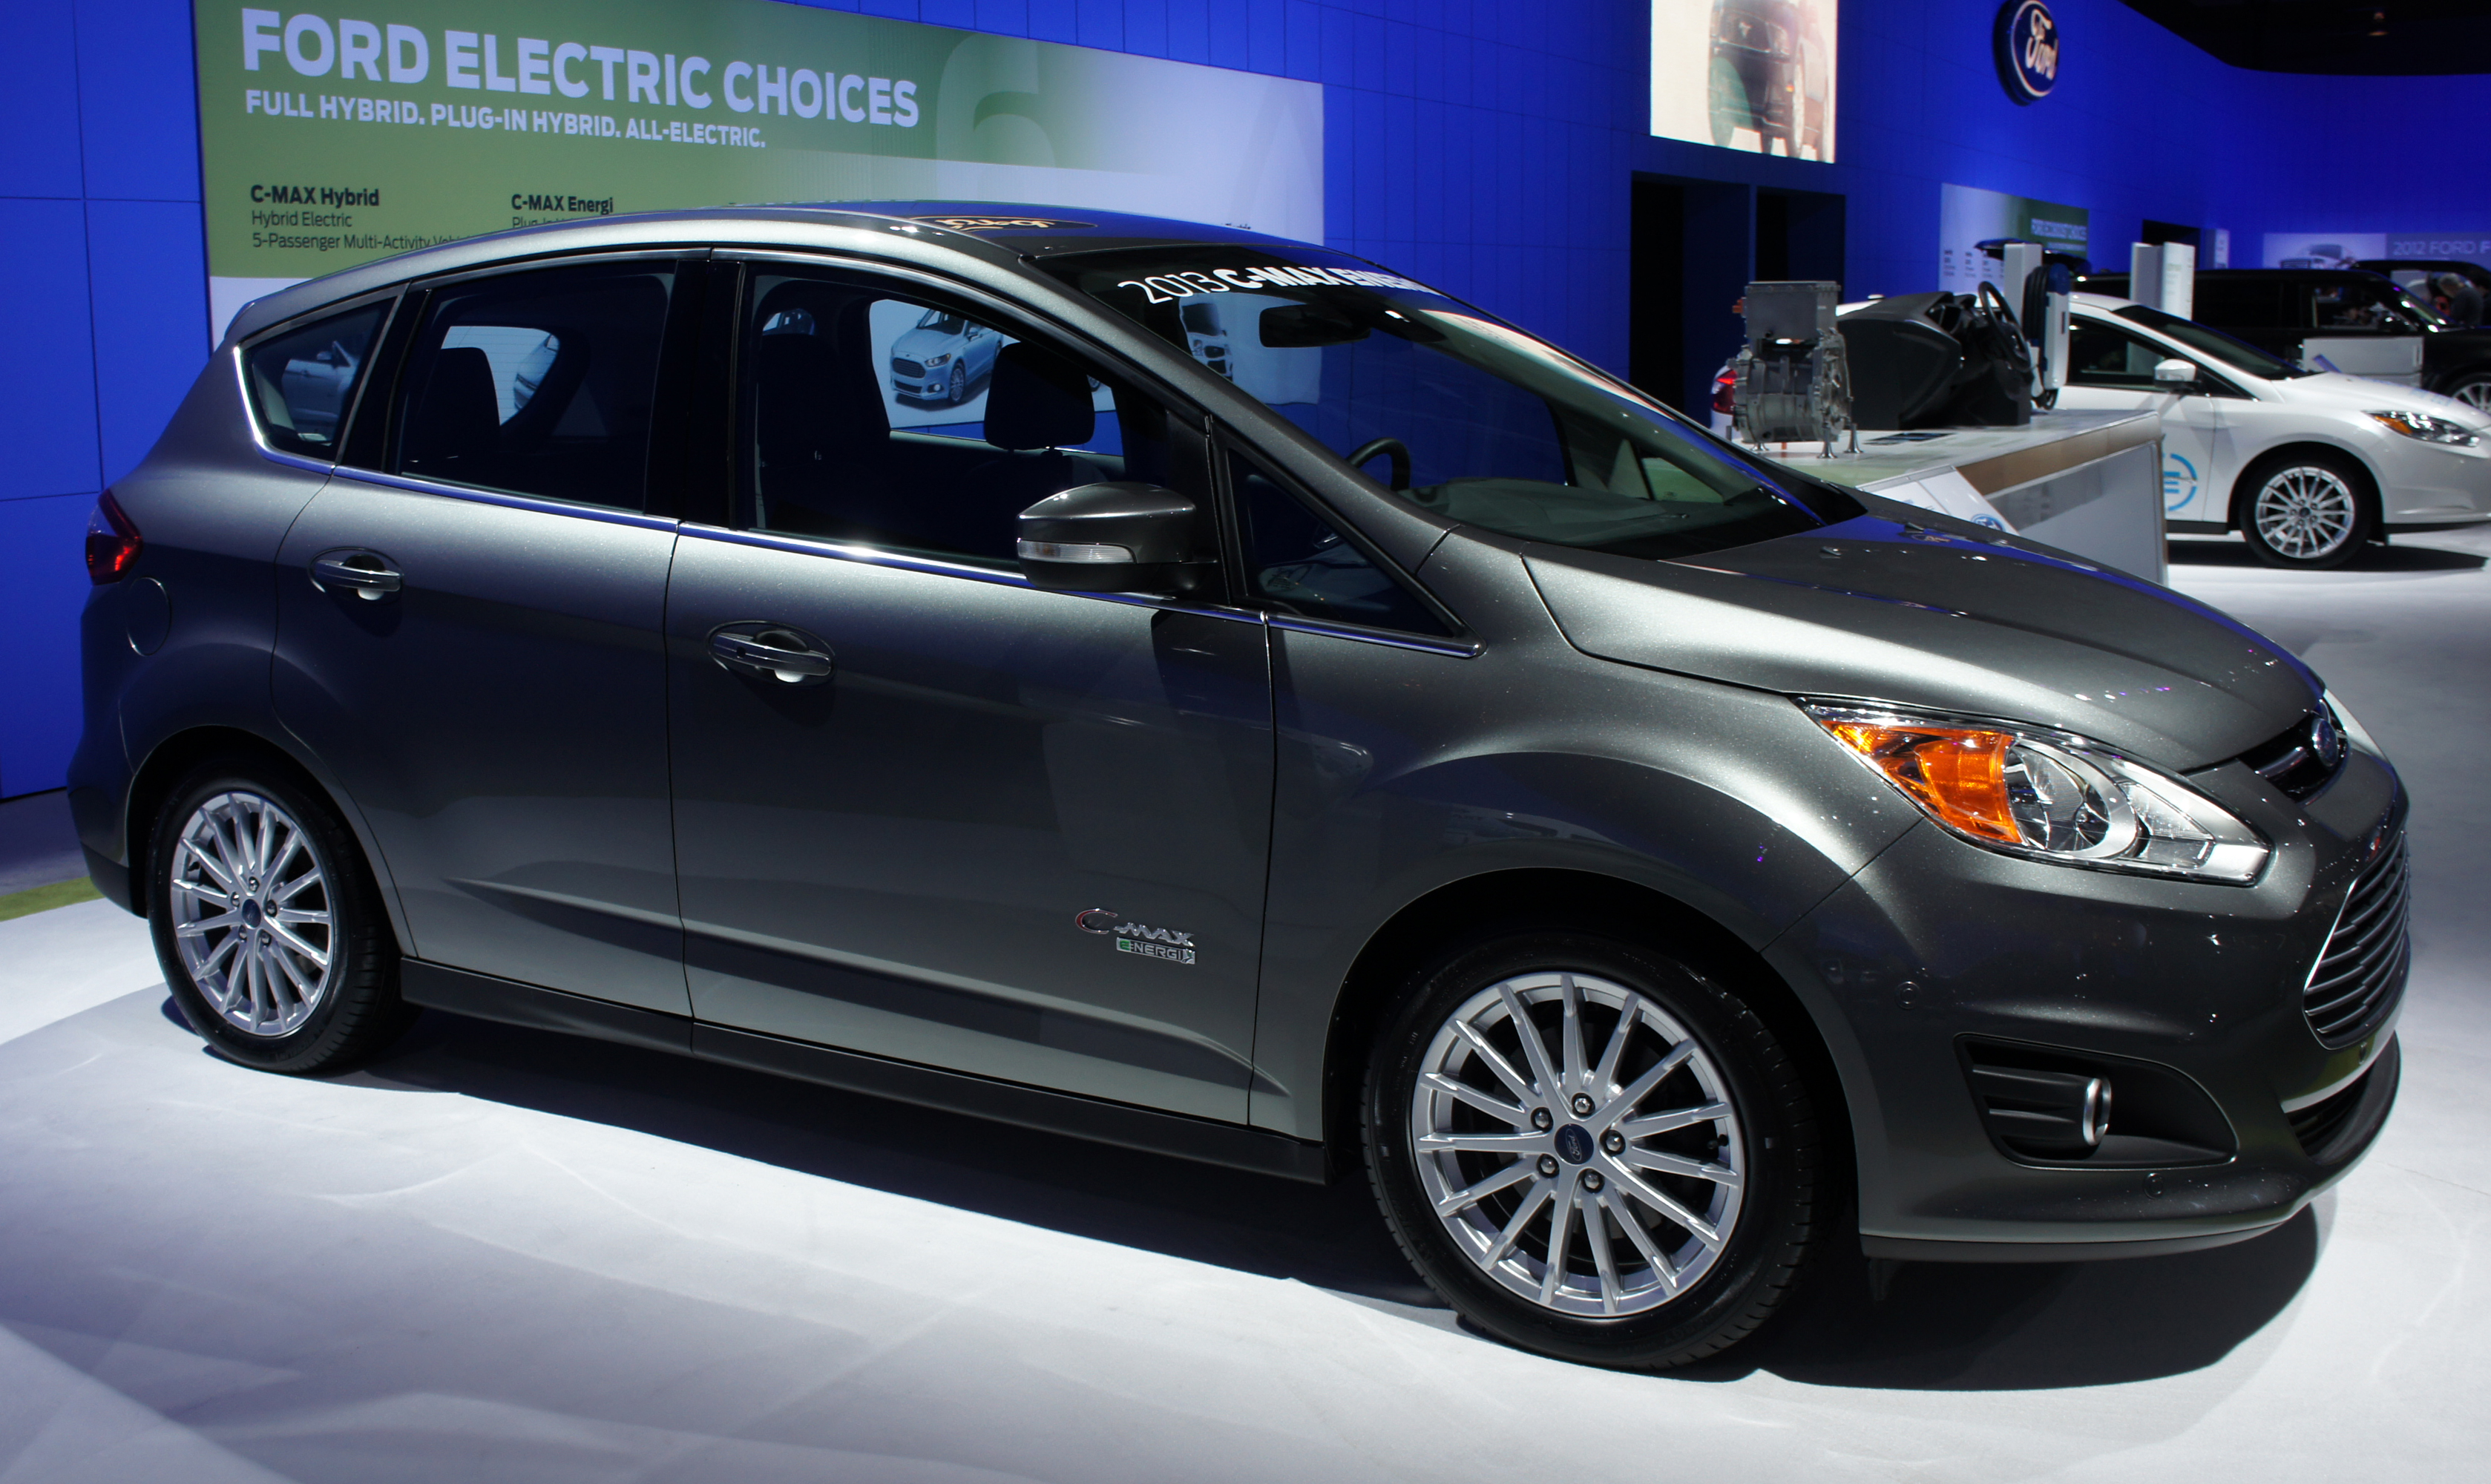 2012 Ford C-Max #12